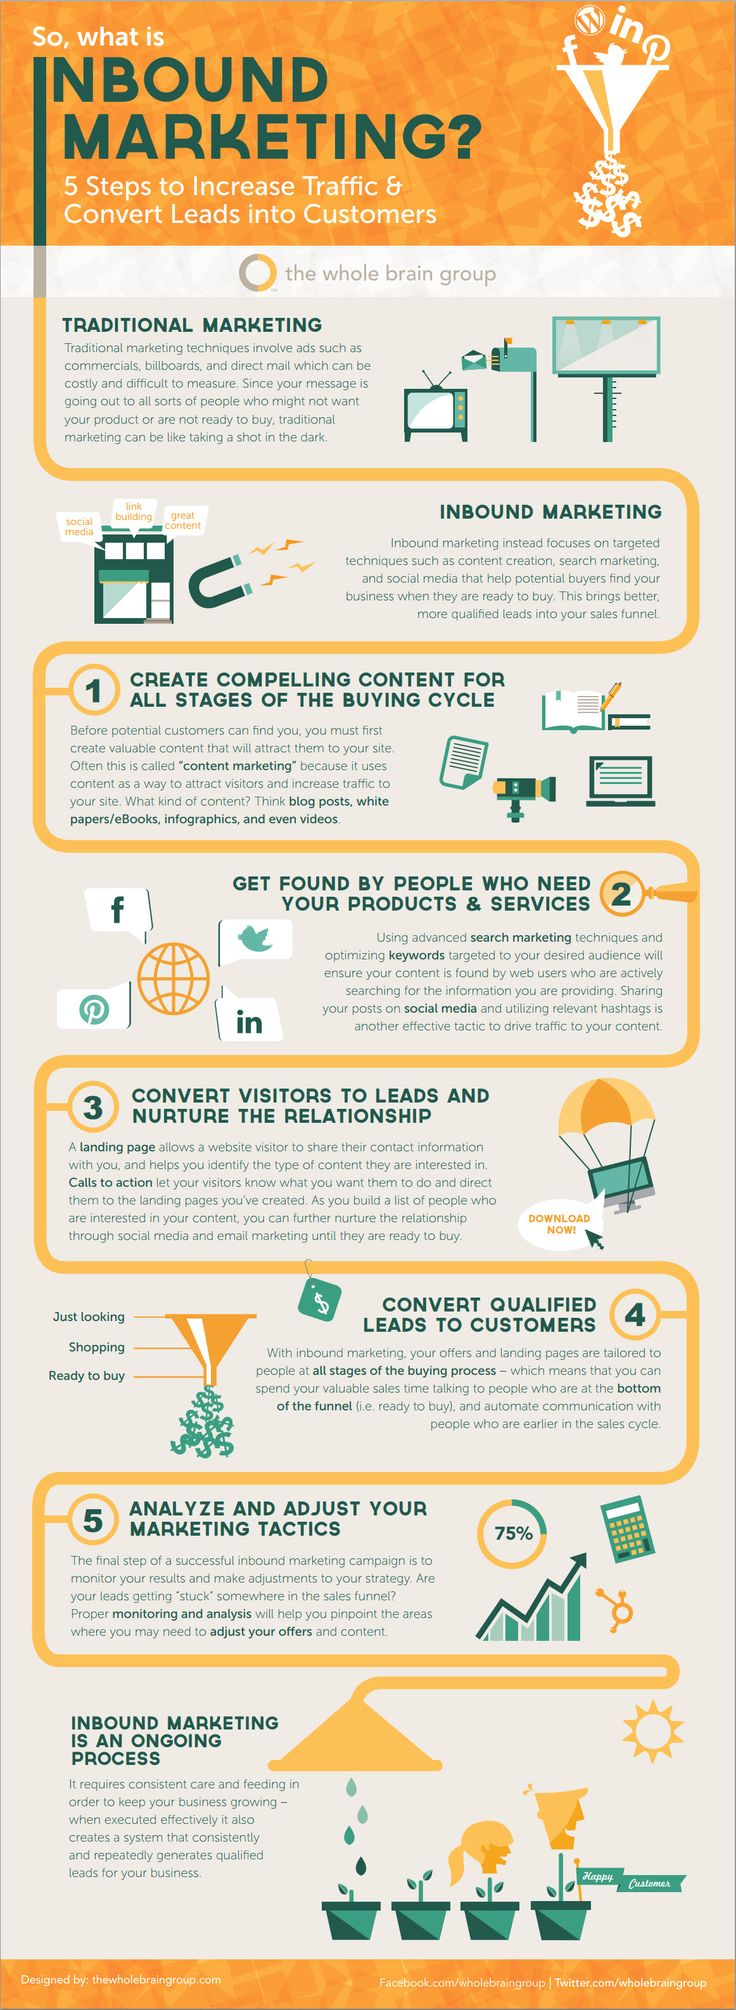 So, what is Inbound Marketing? #infographic